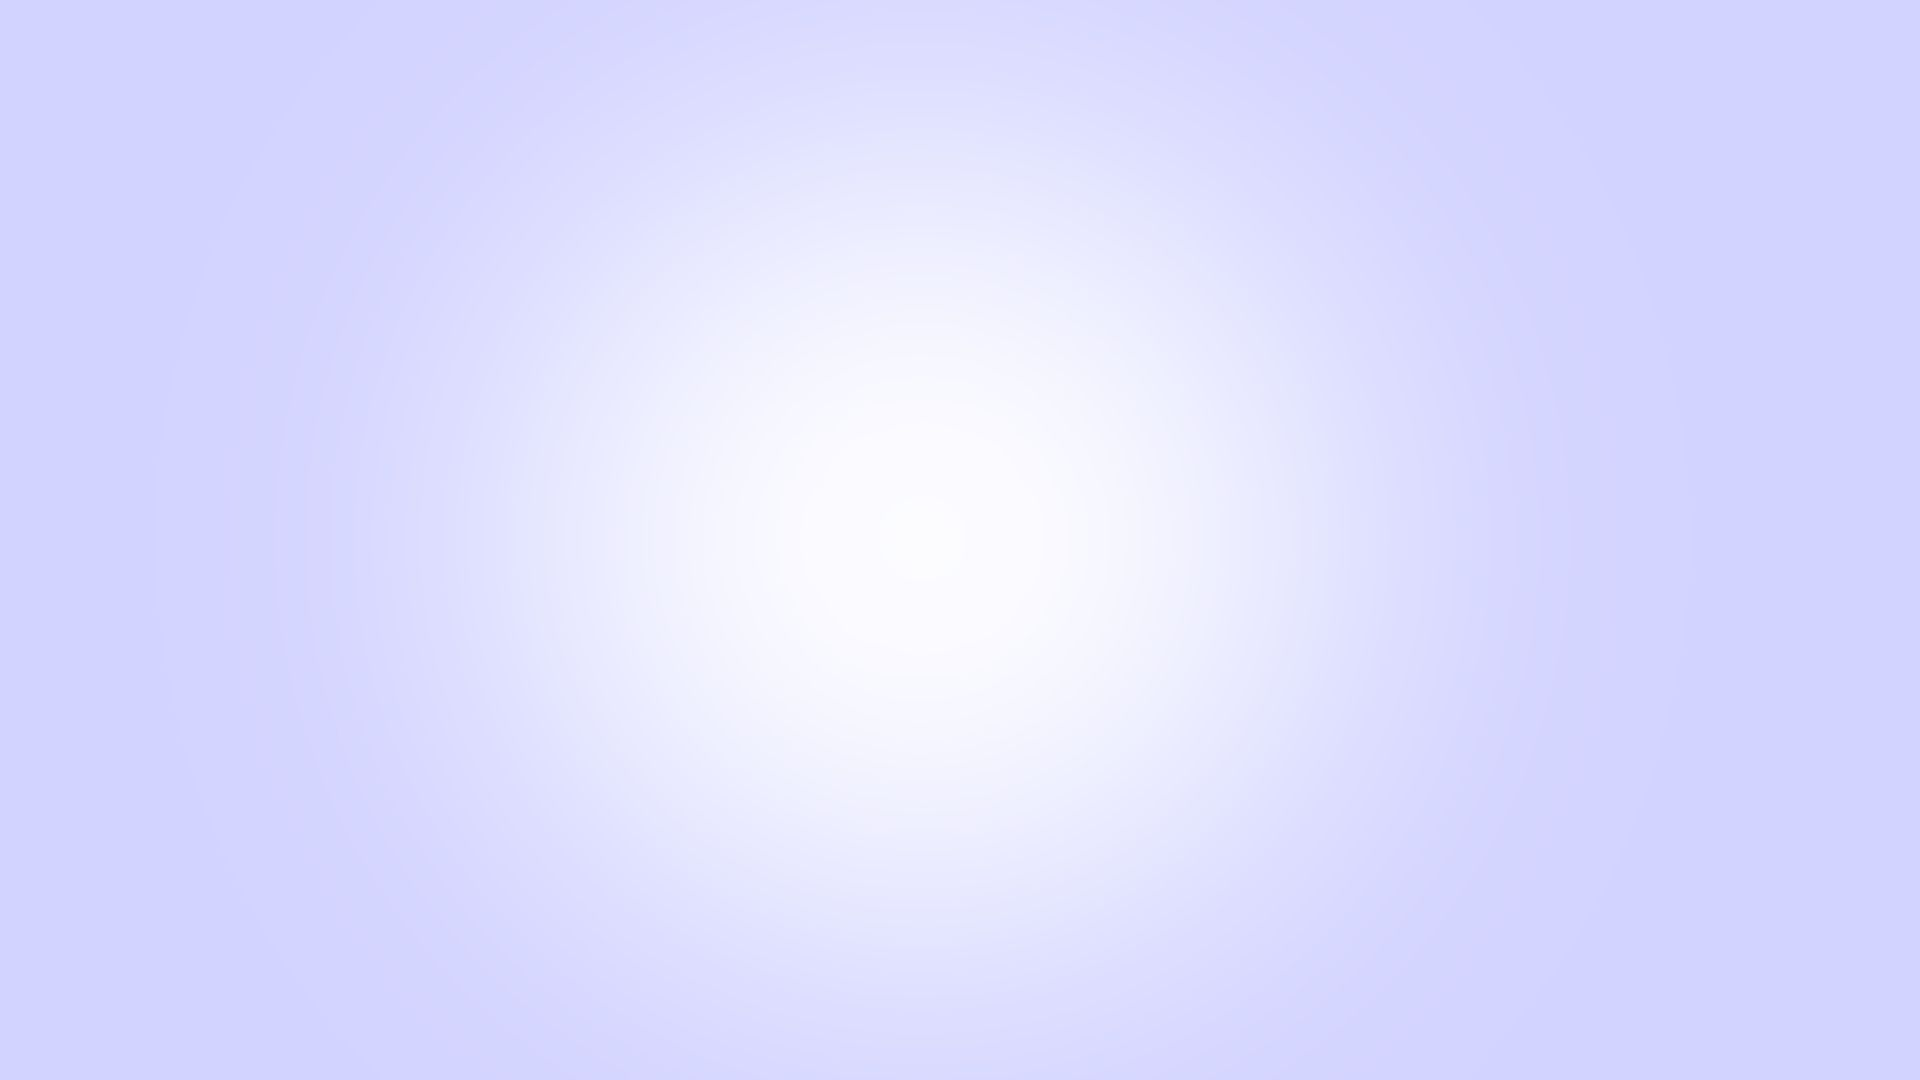 1920x1080 Download - Background Gradient Blue Ppt, Hd Wallpapers ...